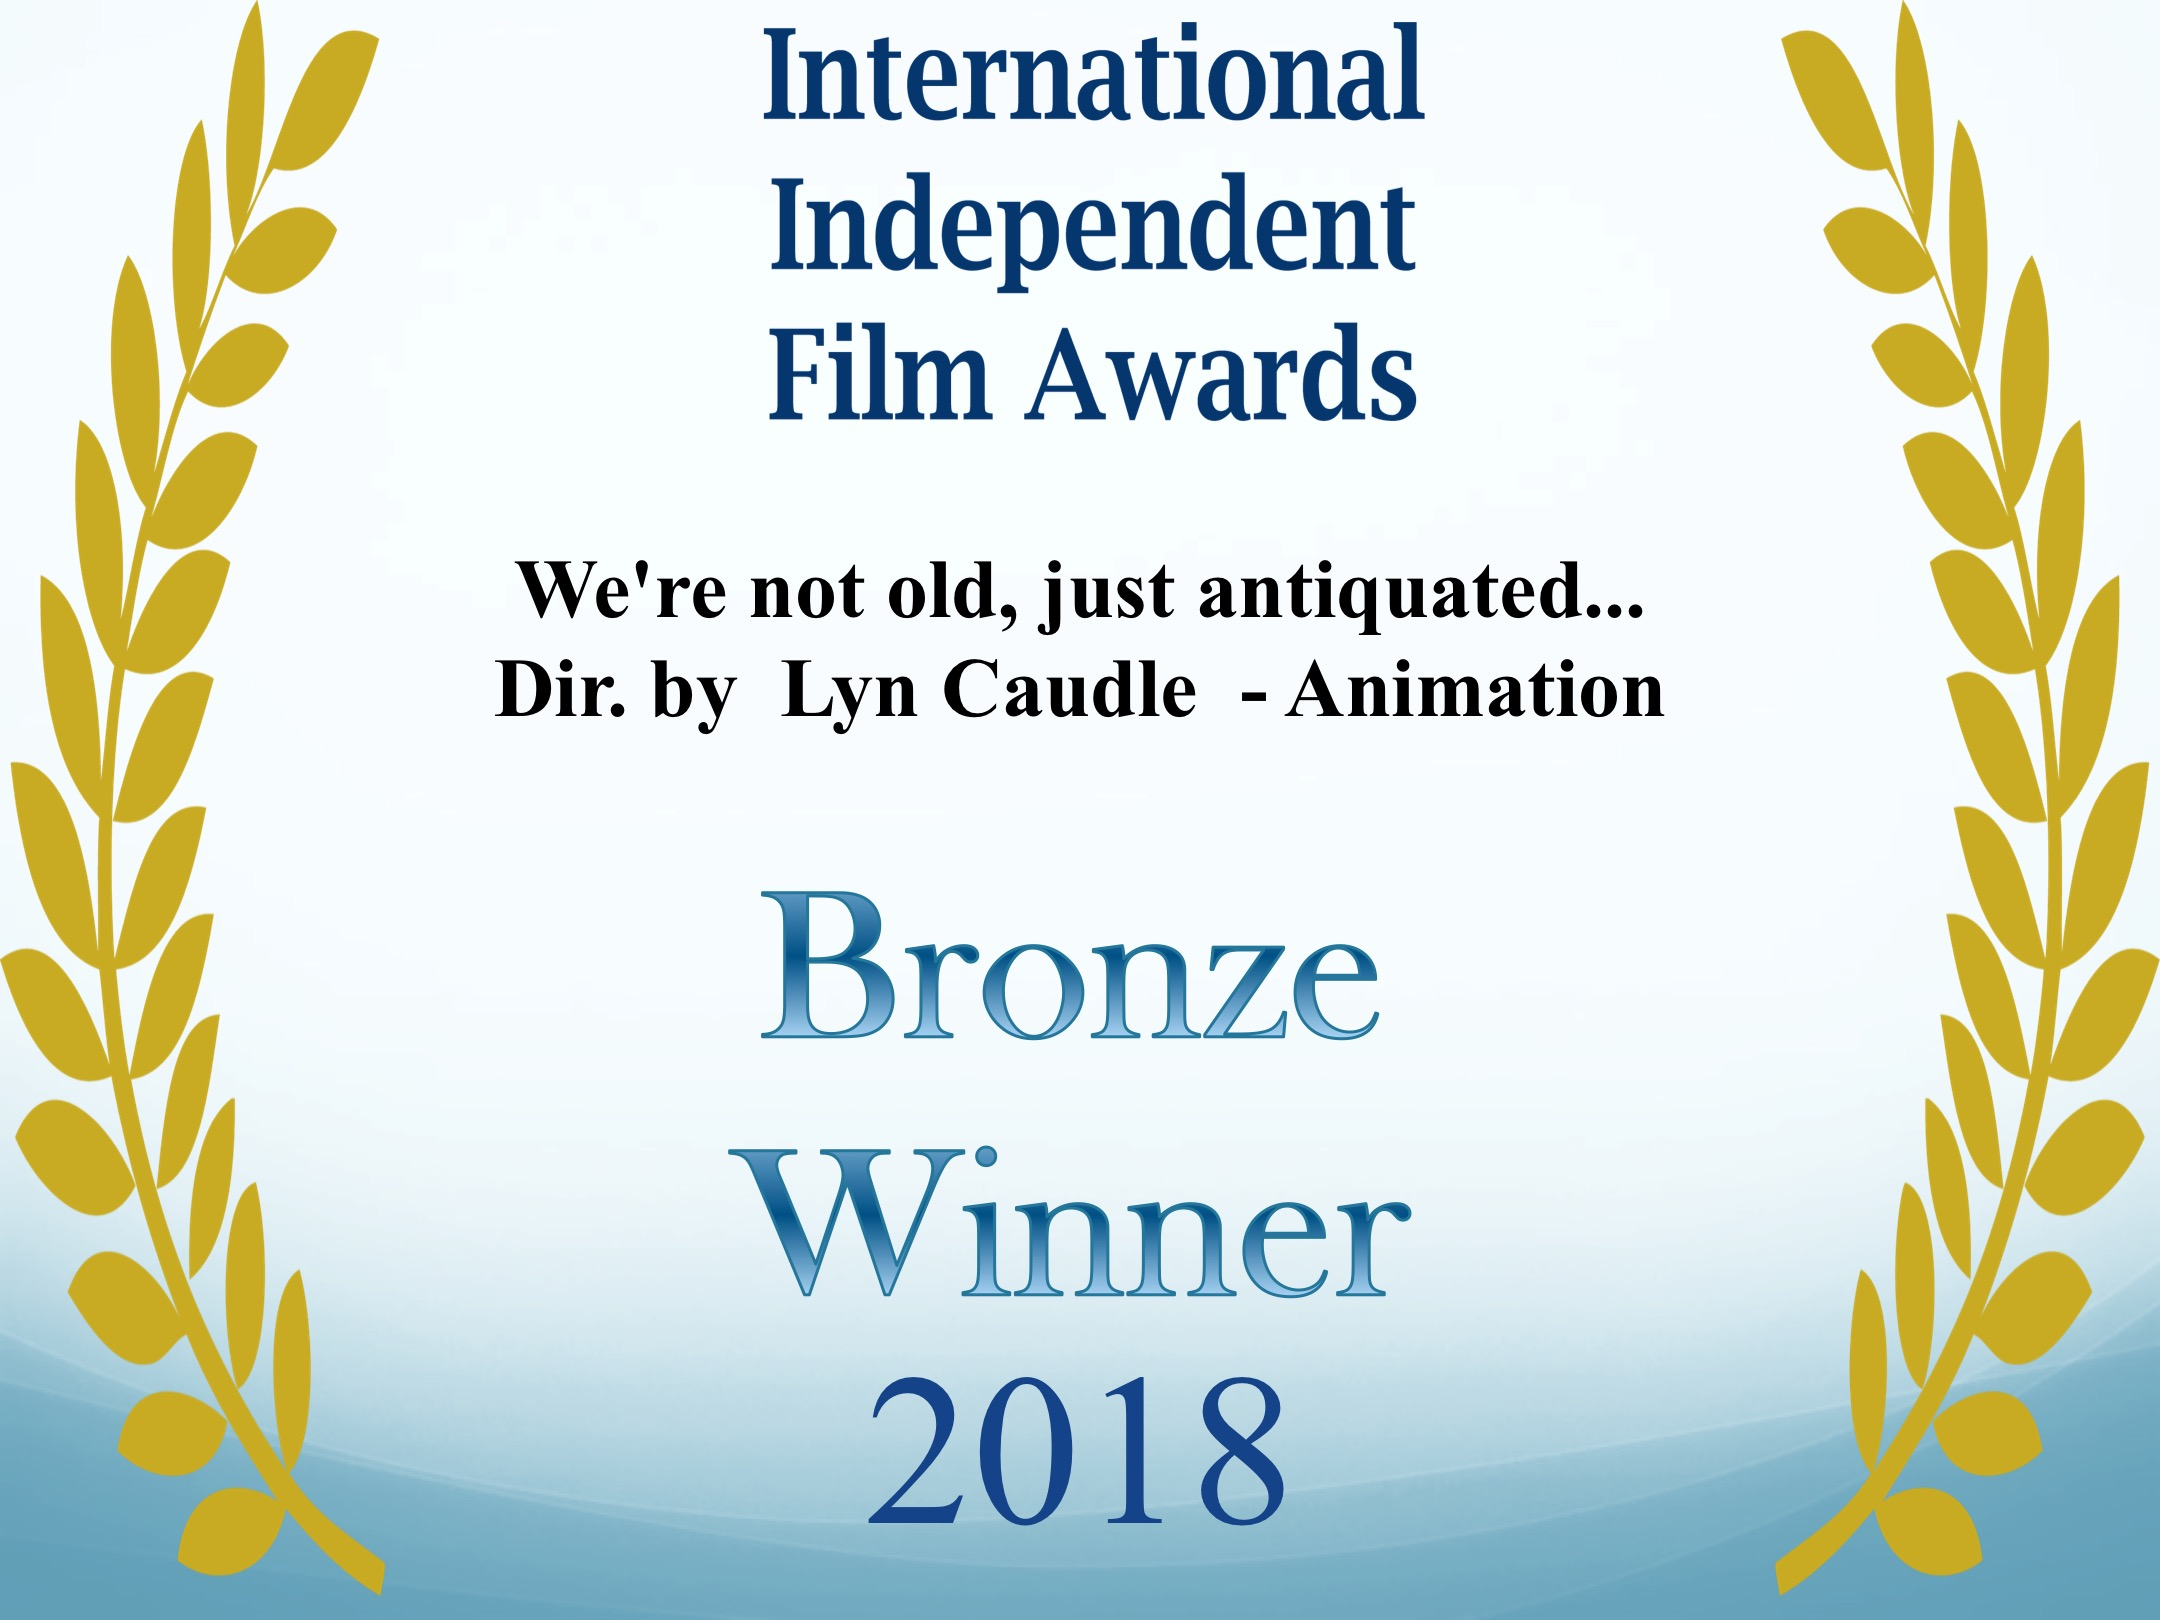 We're not old, just antiquated...  Dir. by  Lyn Caudle  - Animation.jpg